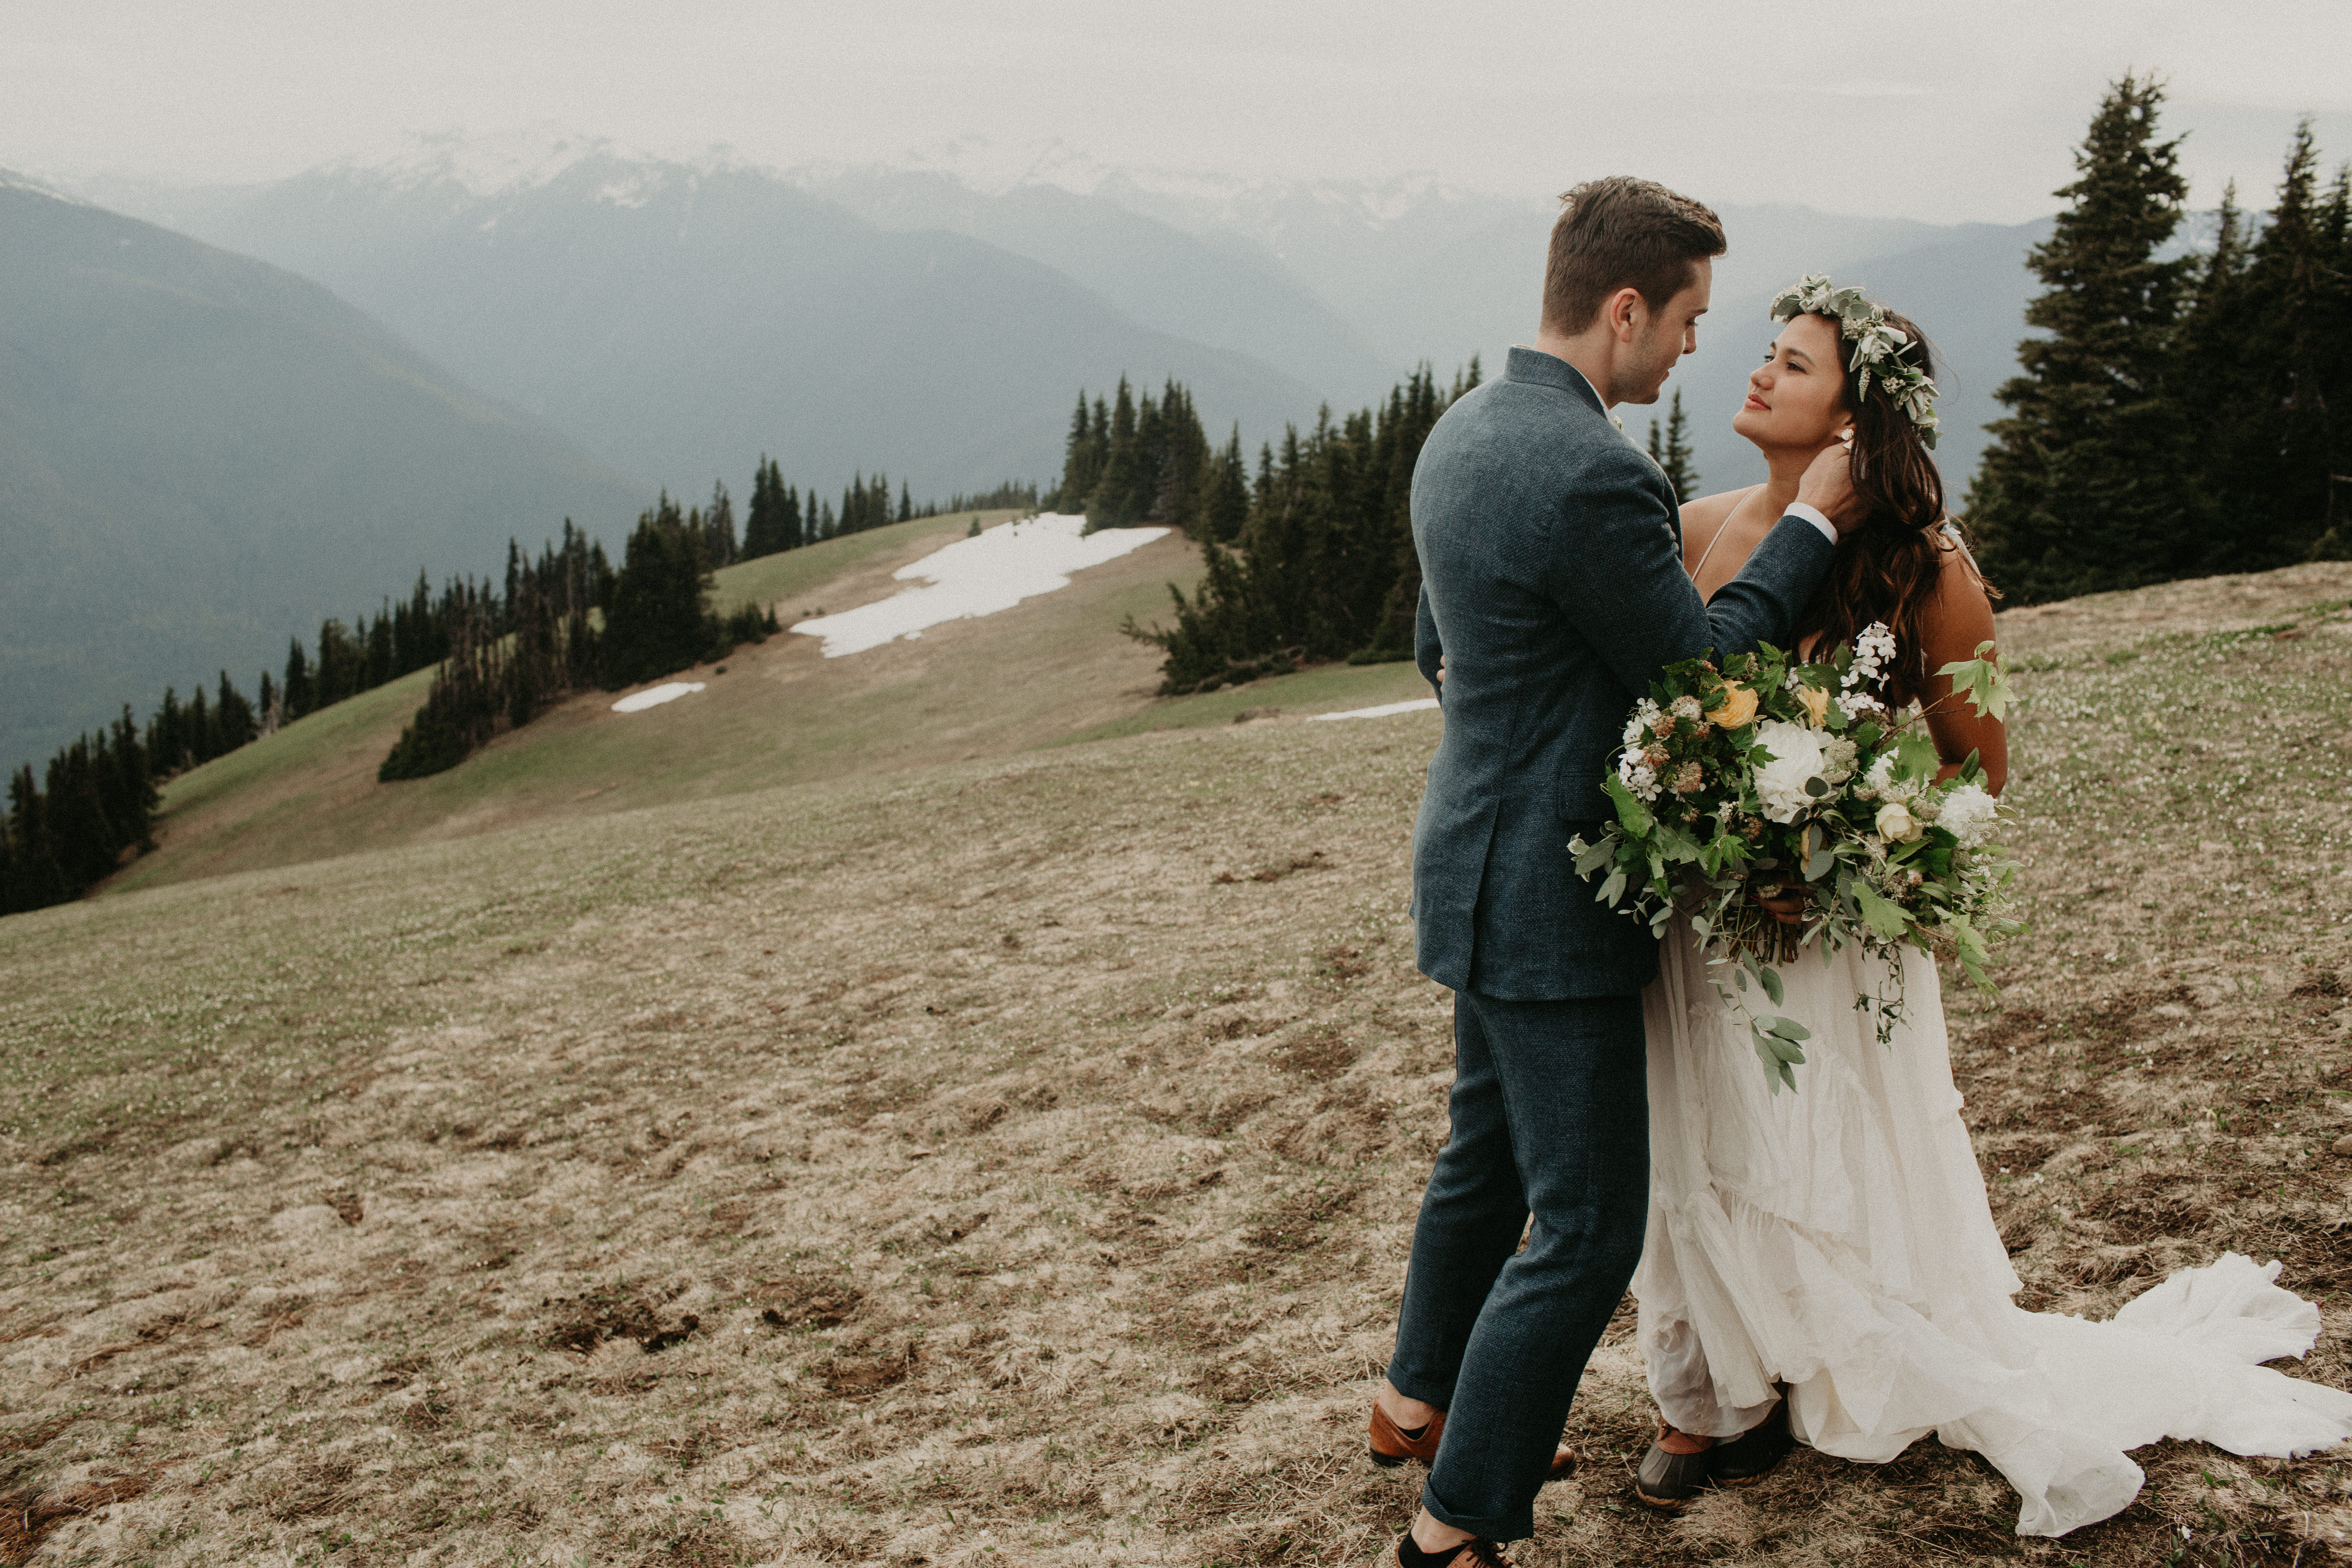 A wild and adventurous wedding at Hurricane Ridge in Olympic National Park by Kadi Tobin